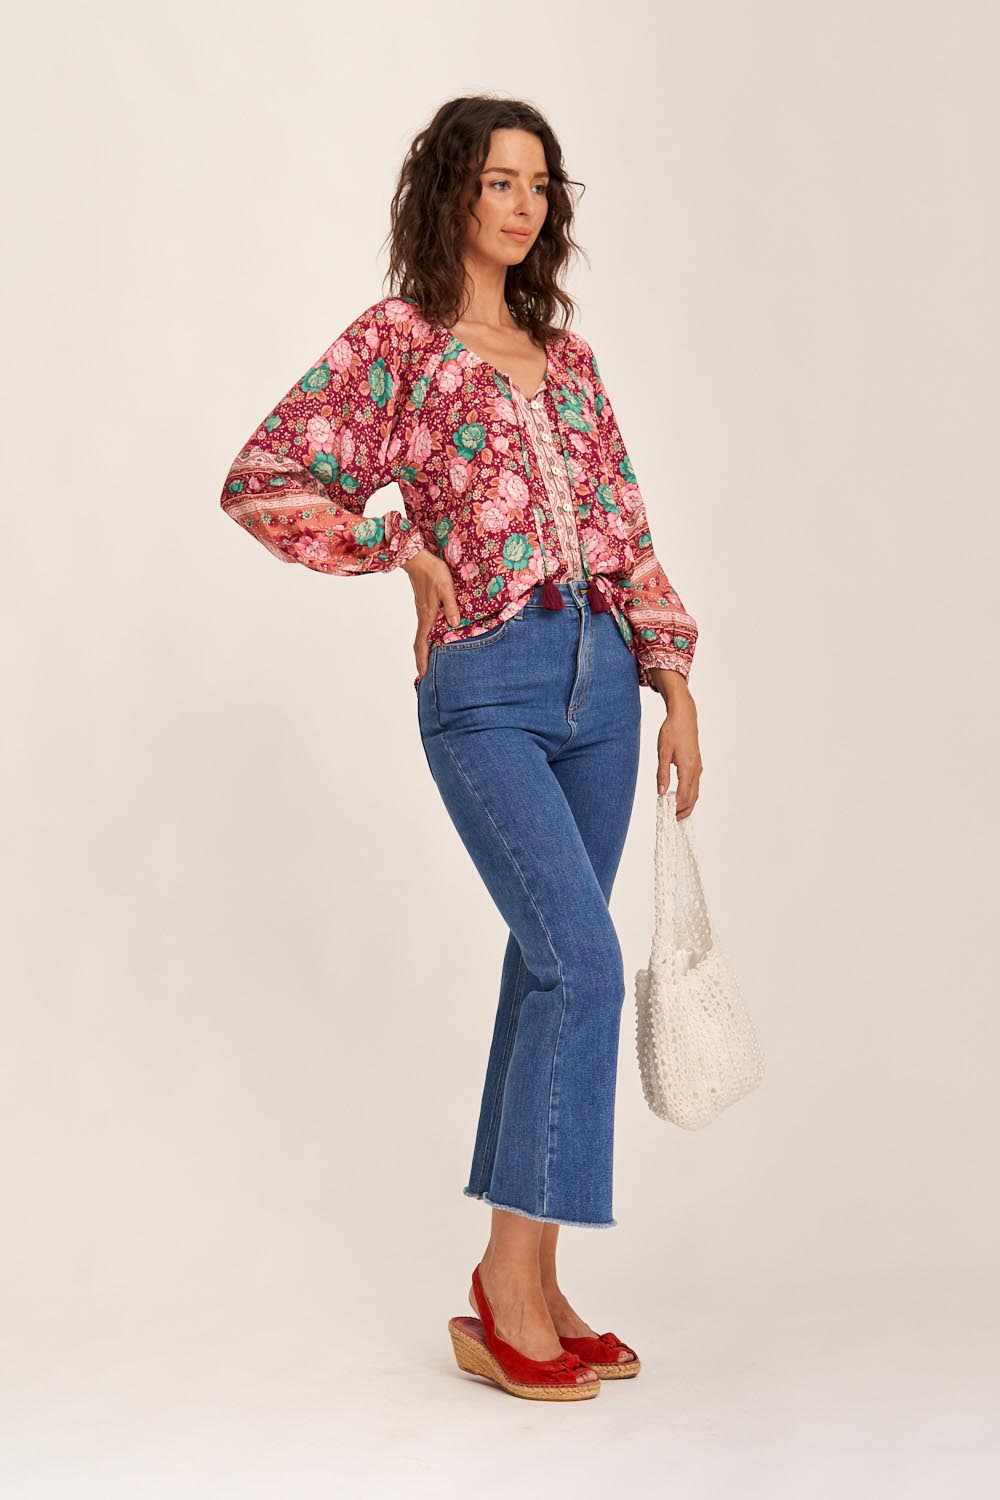 Amberley Blouse in Ruby